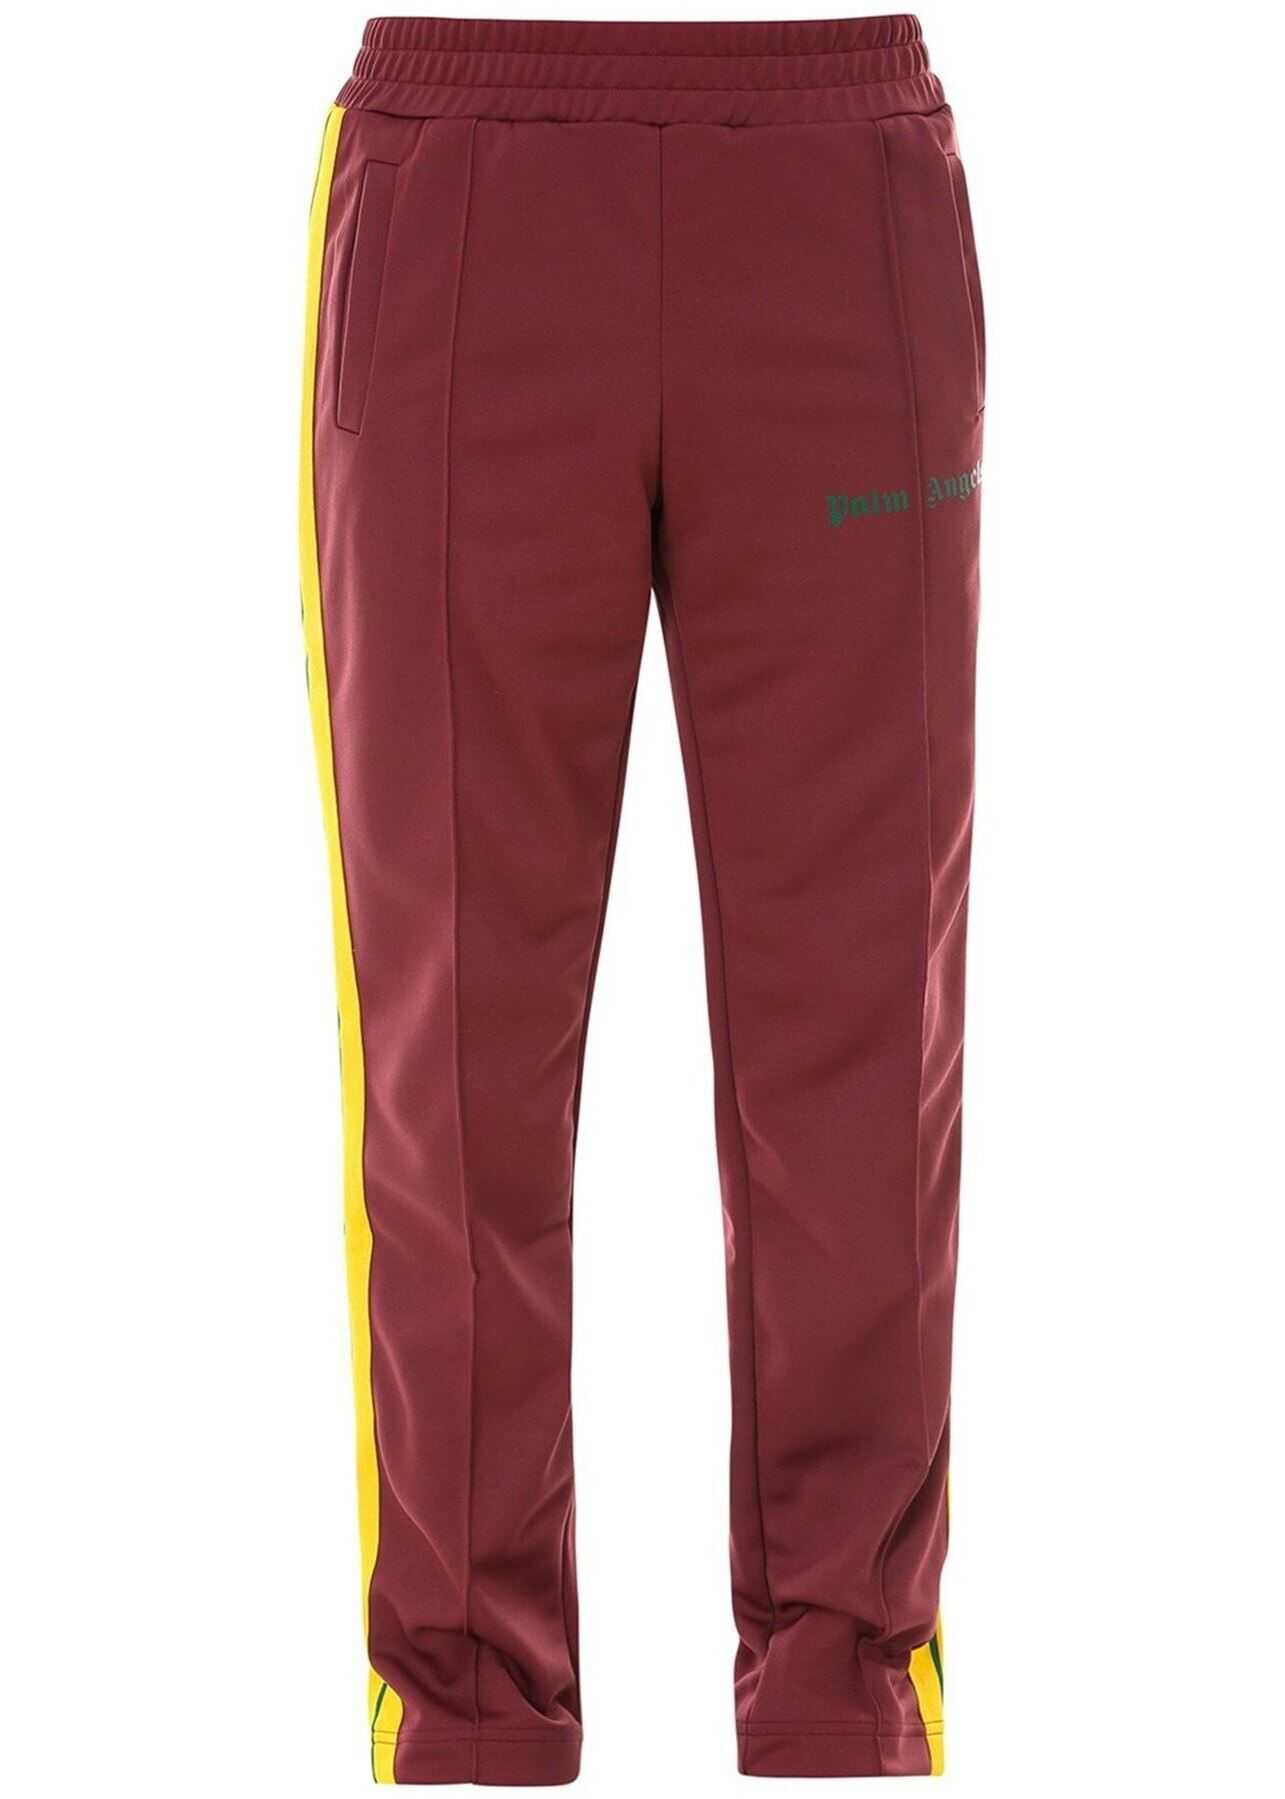 Palm Angels College Tracksuit Bottoms In Red Red imagine